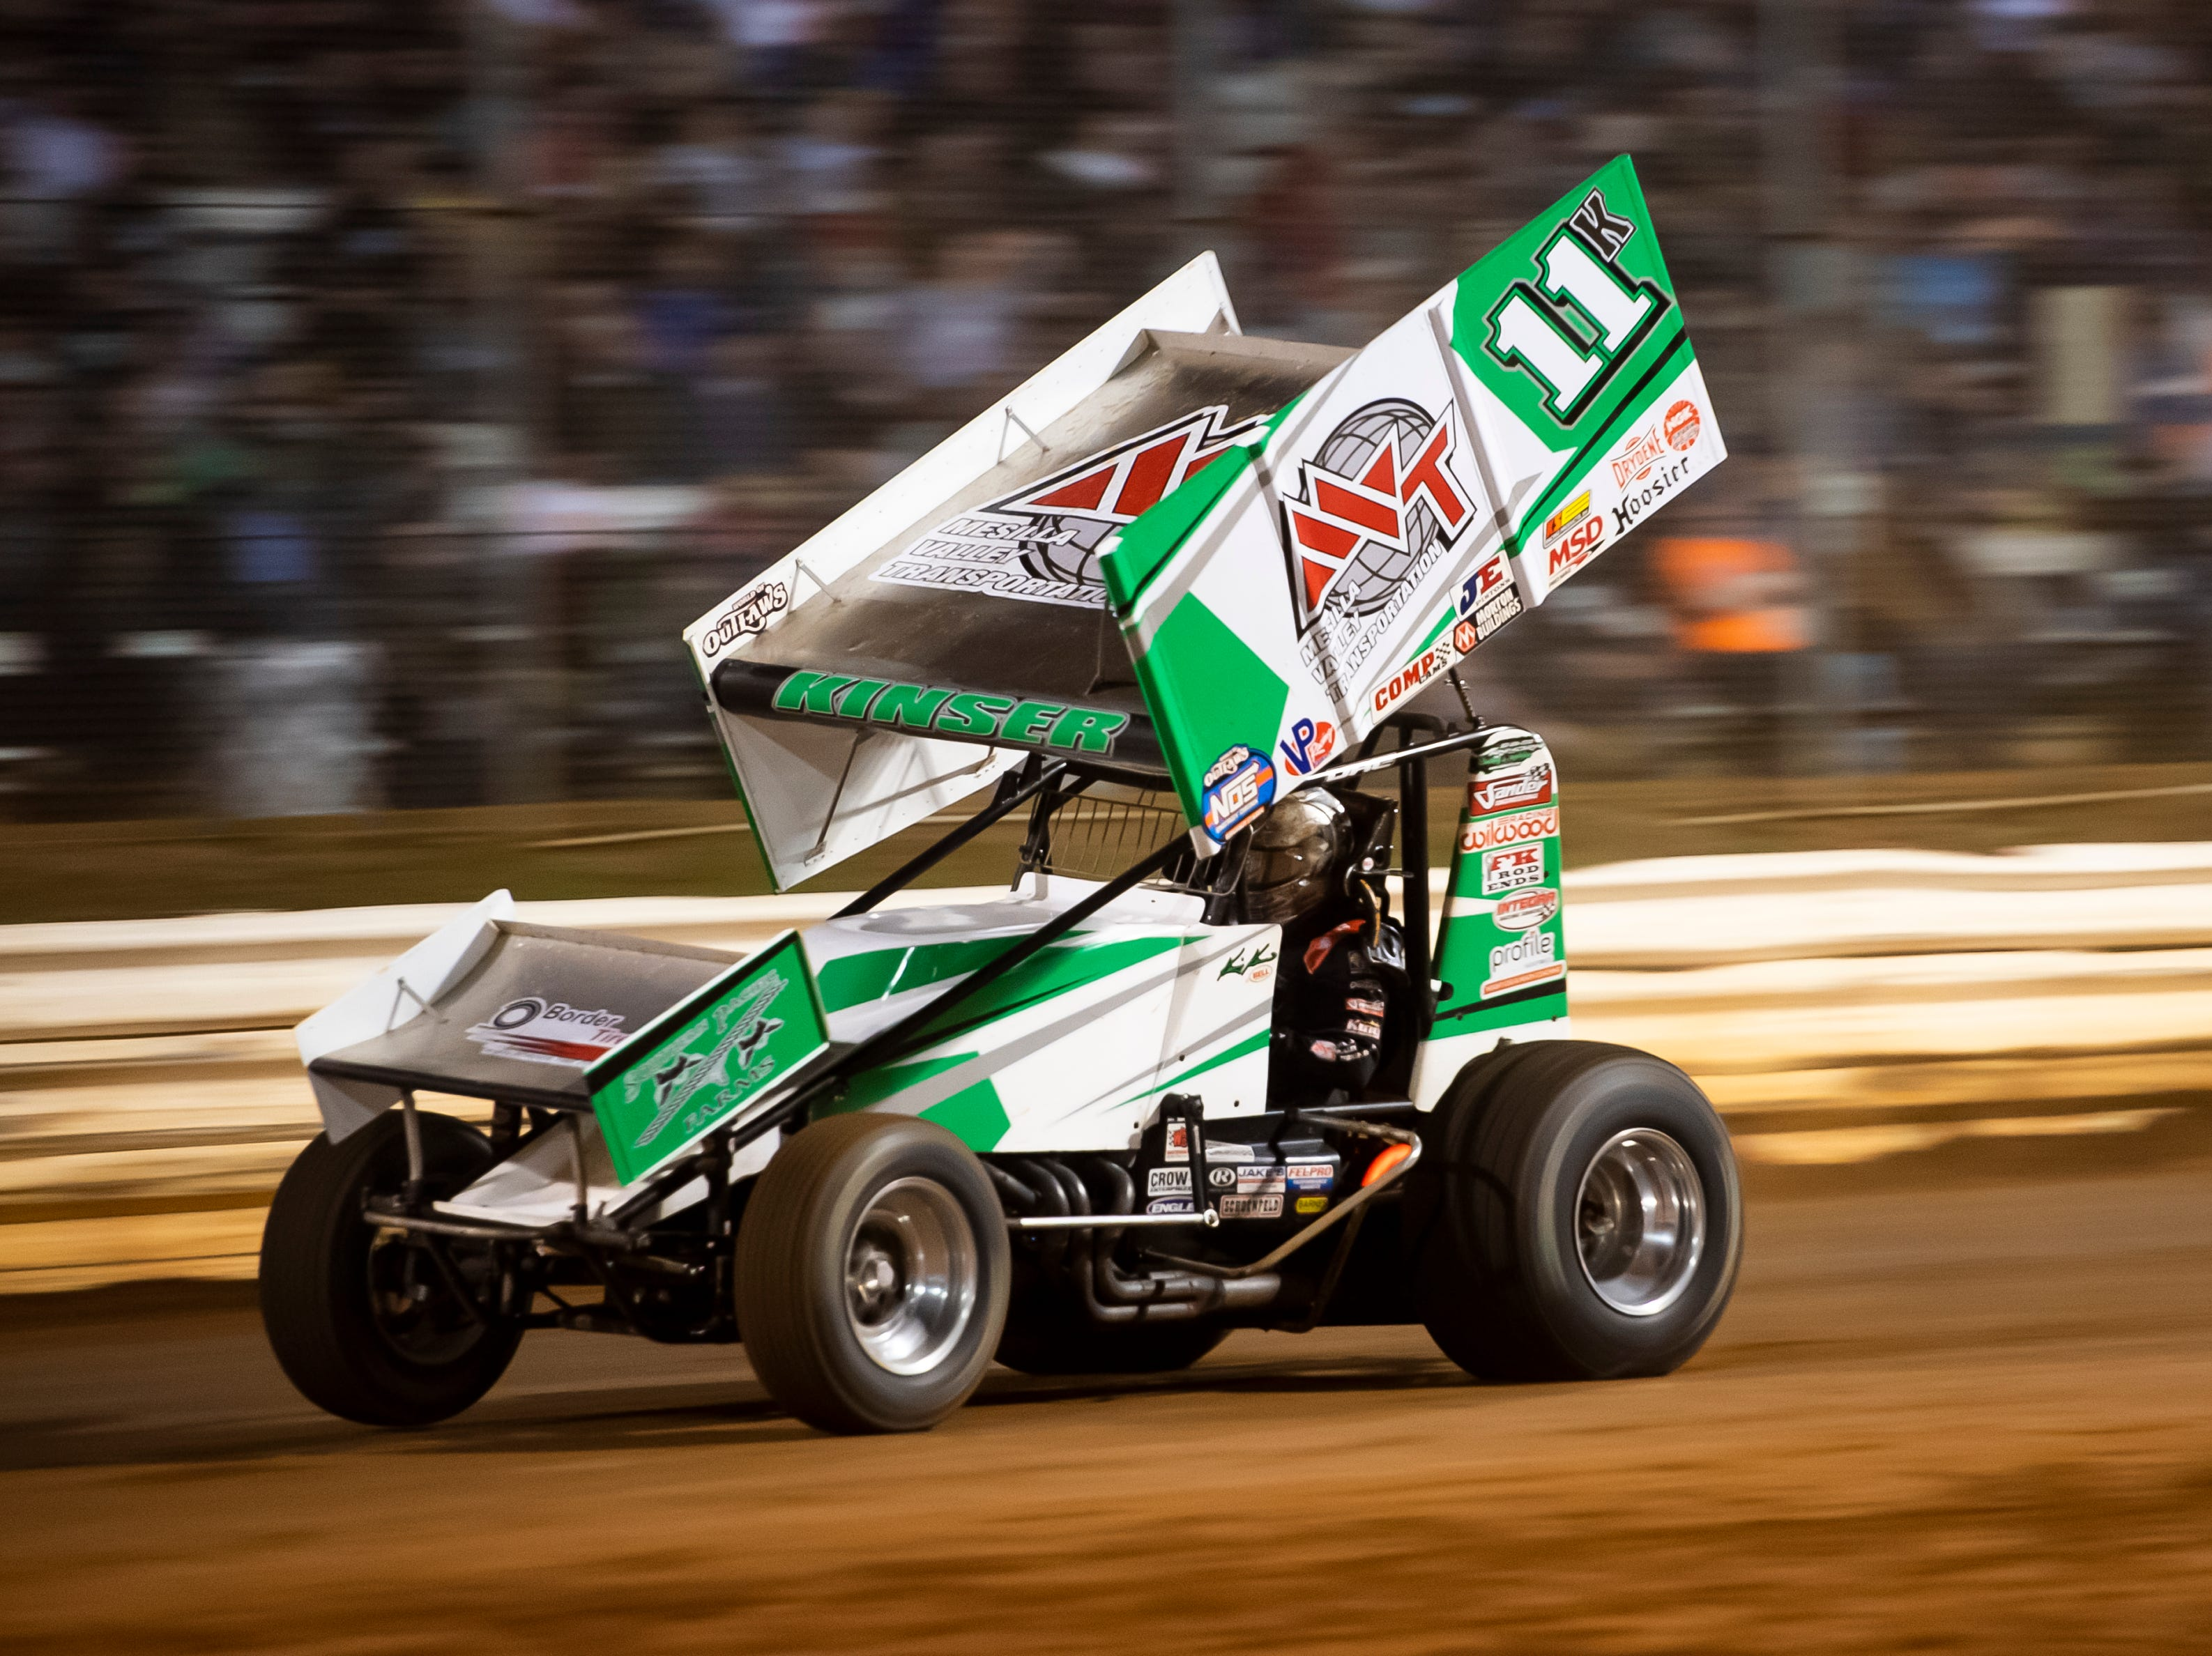 Kraig Kinser races in the number 11K car during the World of Outlaws Gettysburg Clash at Lincoln Speedway in Abbottstown on Wednesday, May 15, 2019.